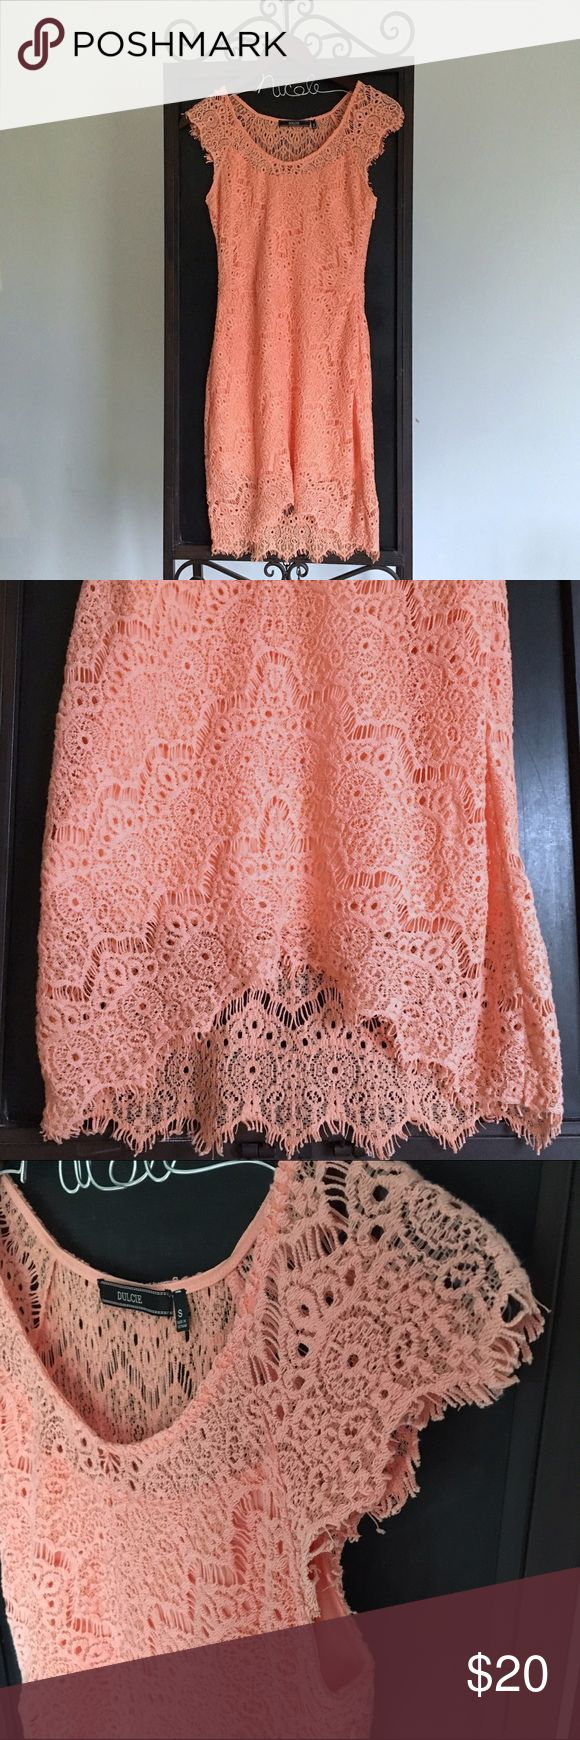 Peach Lace Dress Dulcie peach lace dress that would look so cute for spring time! Worn once! Dulcie  Dresses High Low